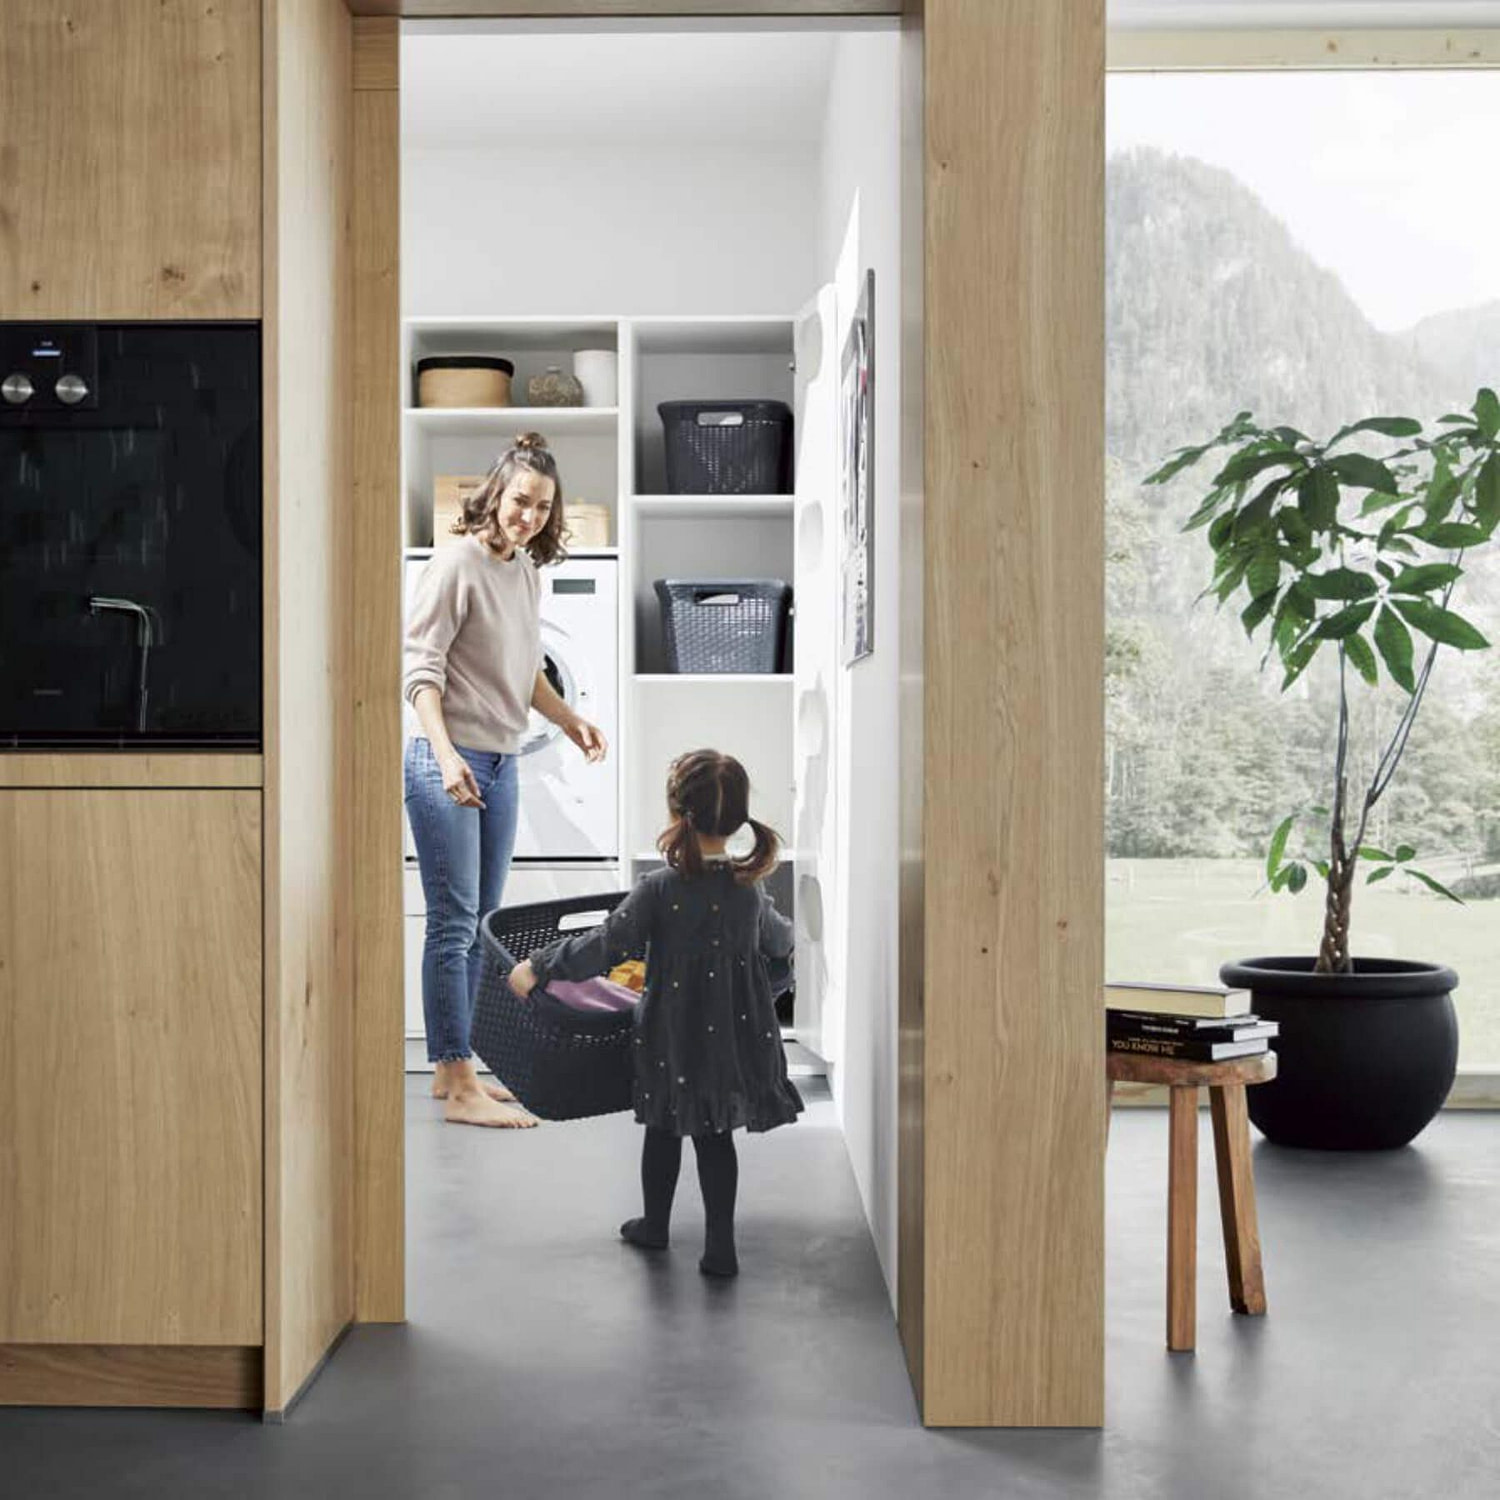 Girl and mother in utility room